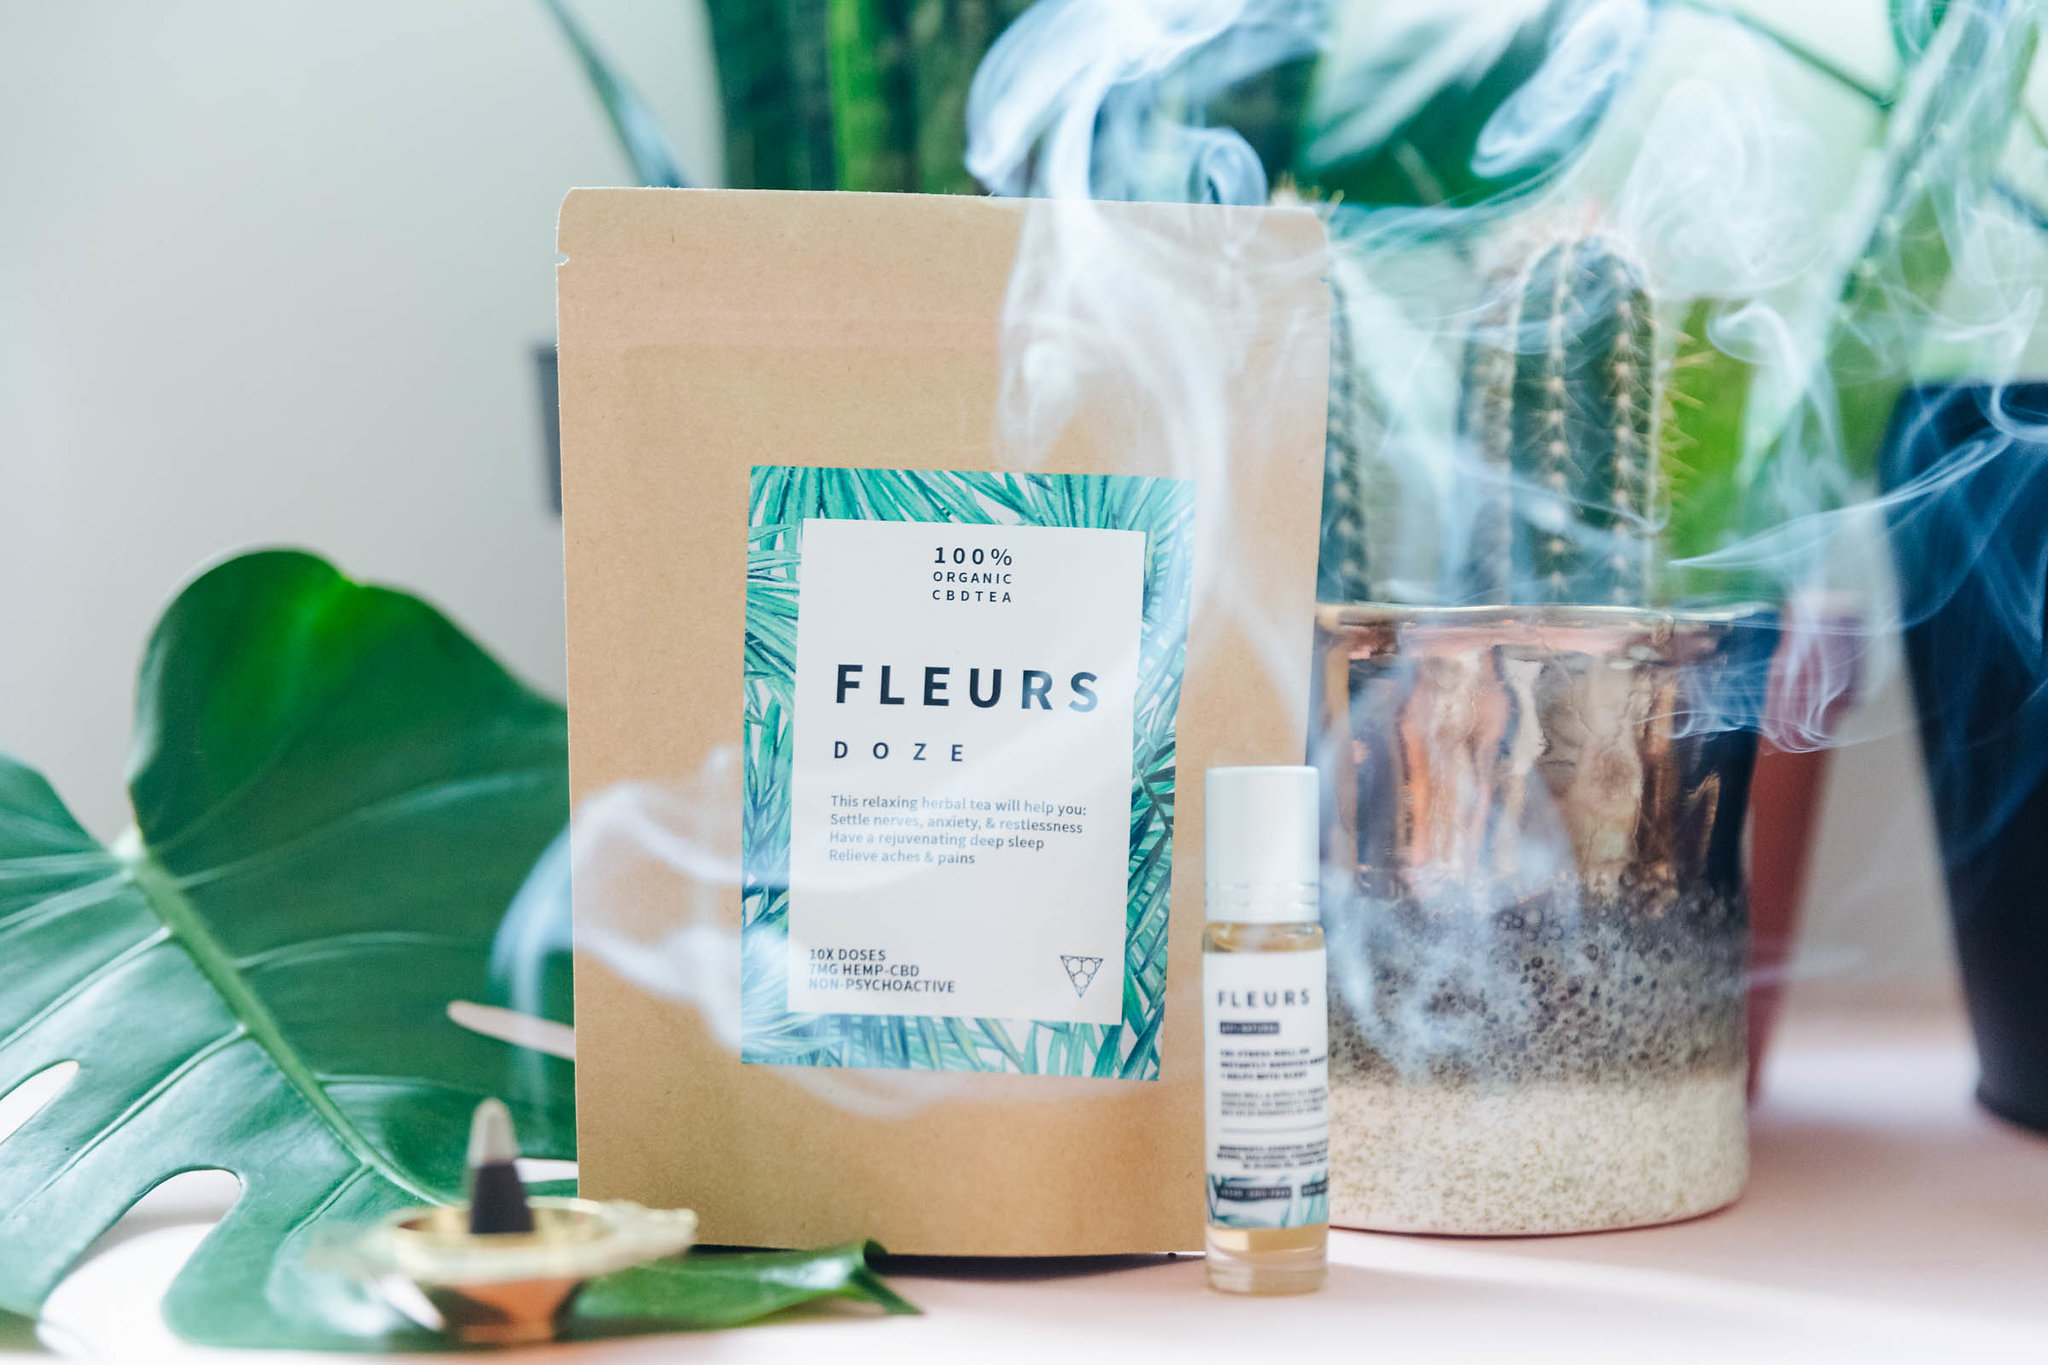 48 2018 08 16 FleursProduct  Weed Tea: the Benefits, the High, and How to Make it